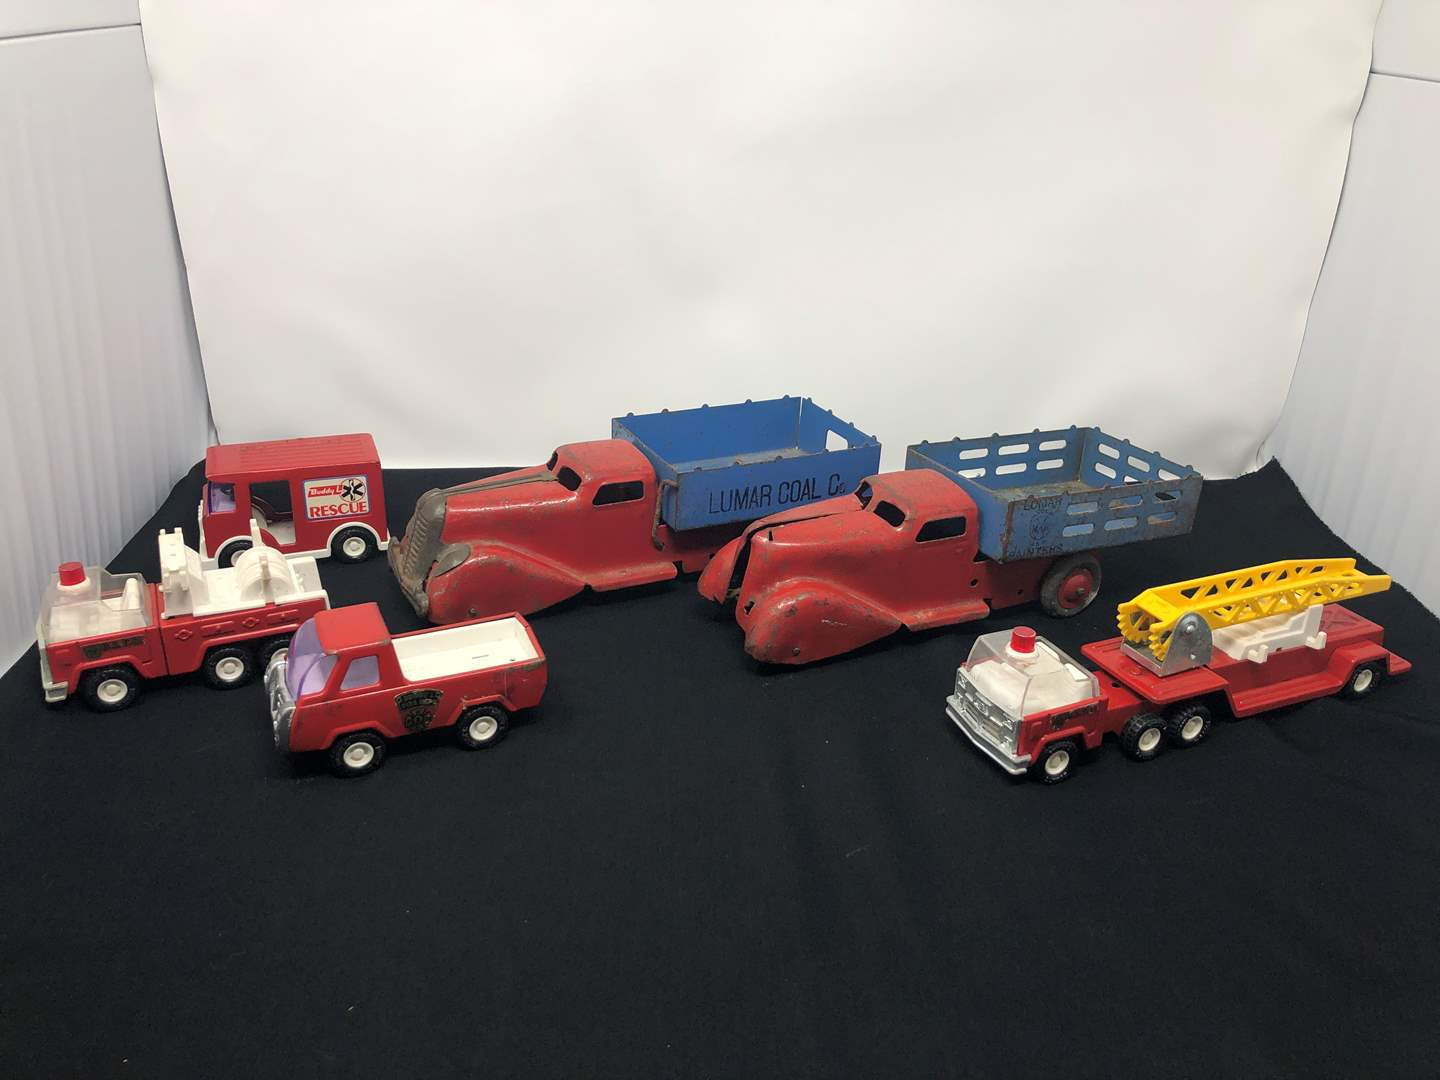 Lot # 193 - Vintage Toy Trucks: Lumar Coal Co., Buddy L Fire & Rescue  (main image)